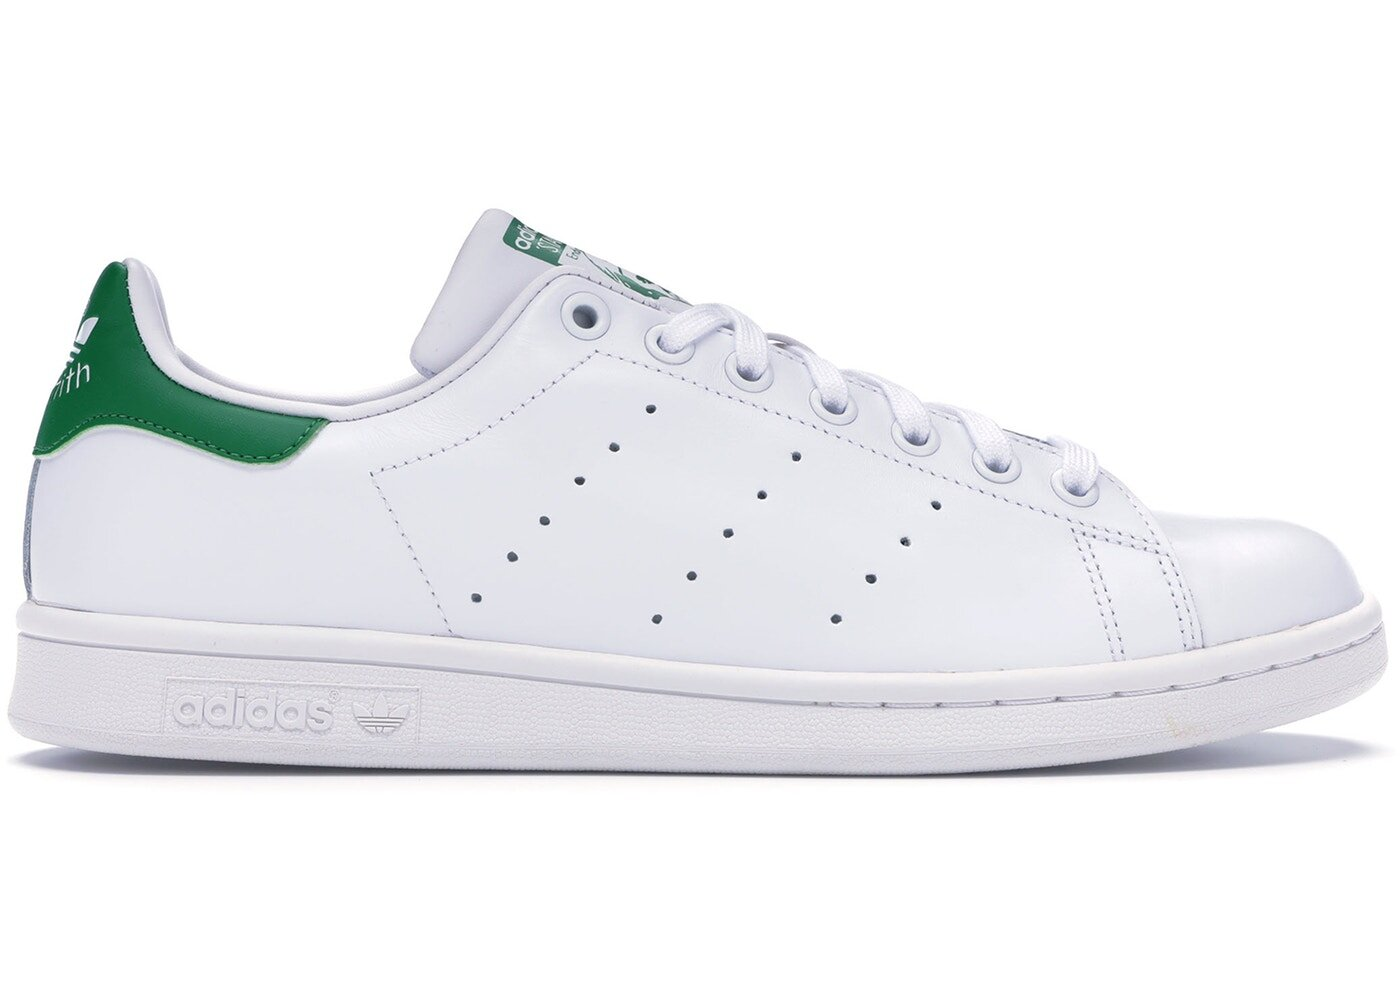 Adidas-Stan-Smith-White-Green-OG-Product.jpg